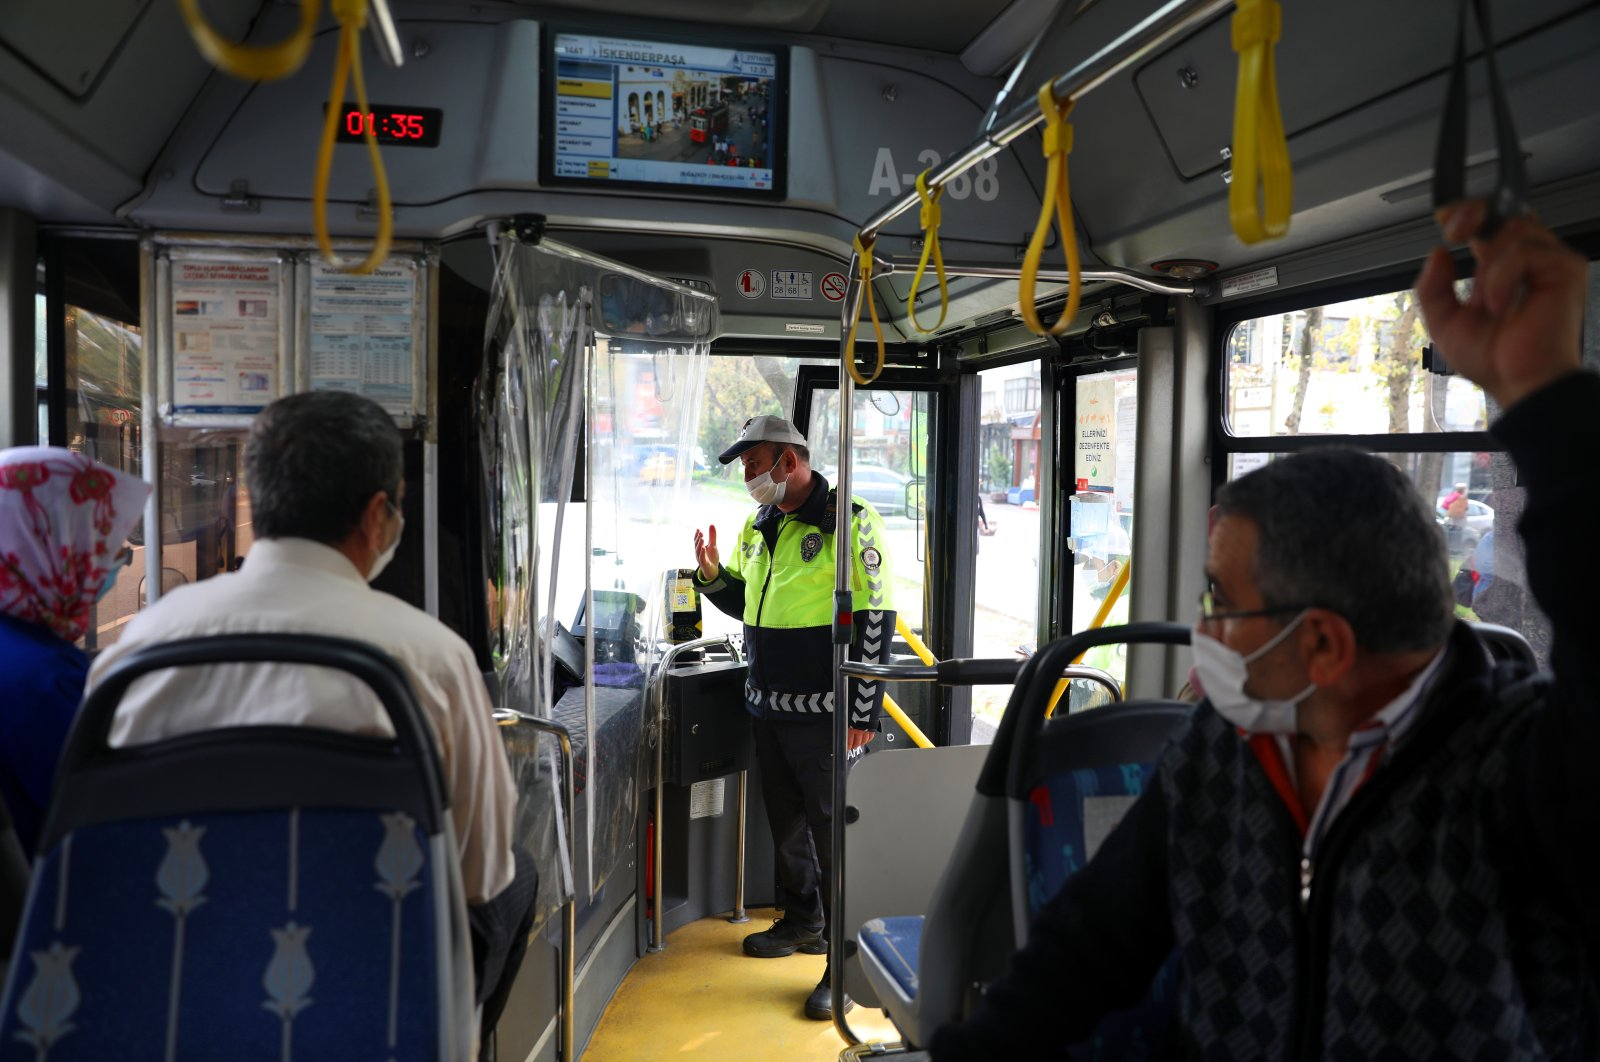 A policeman inspects a bus for compliance with COVID-19 measures, in Istanbul, Turkey, Oct. 27, 2020. (AA Photo)